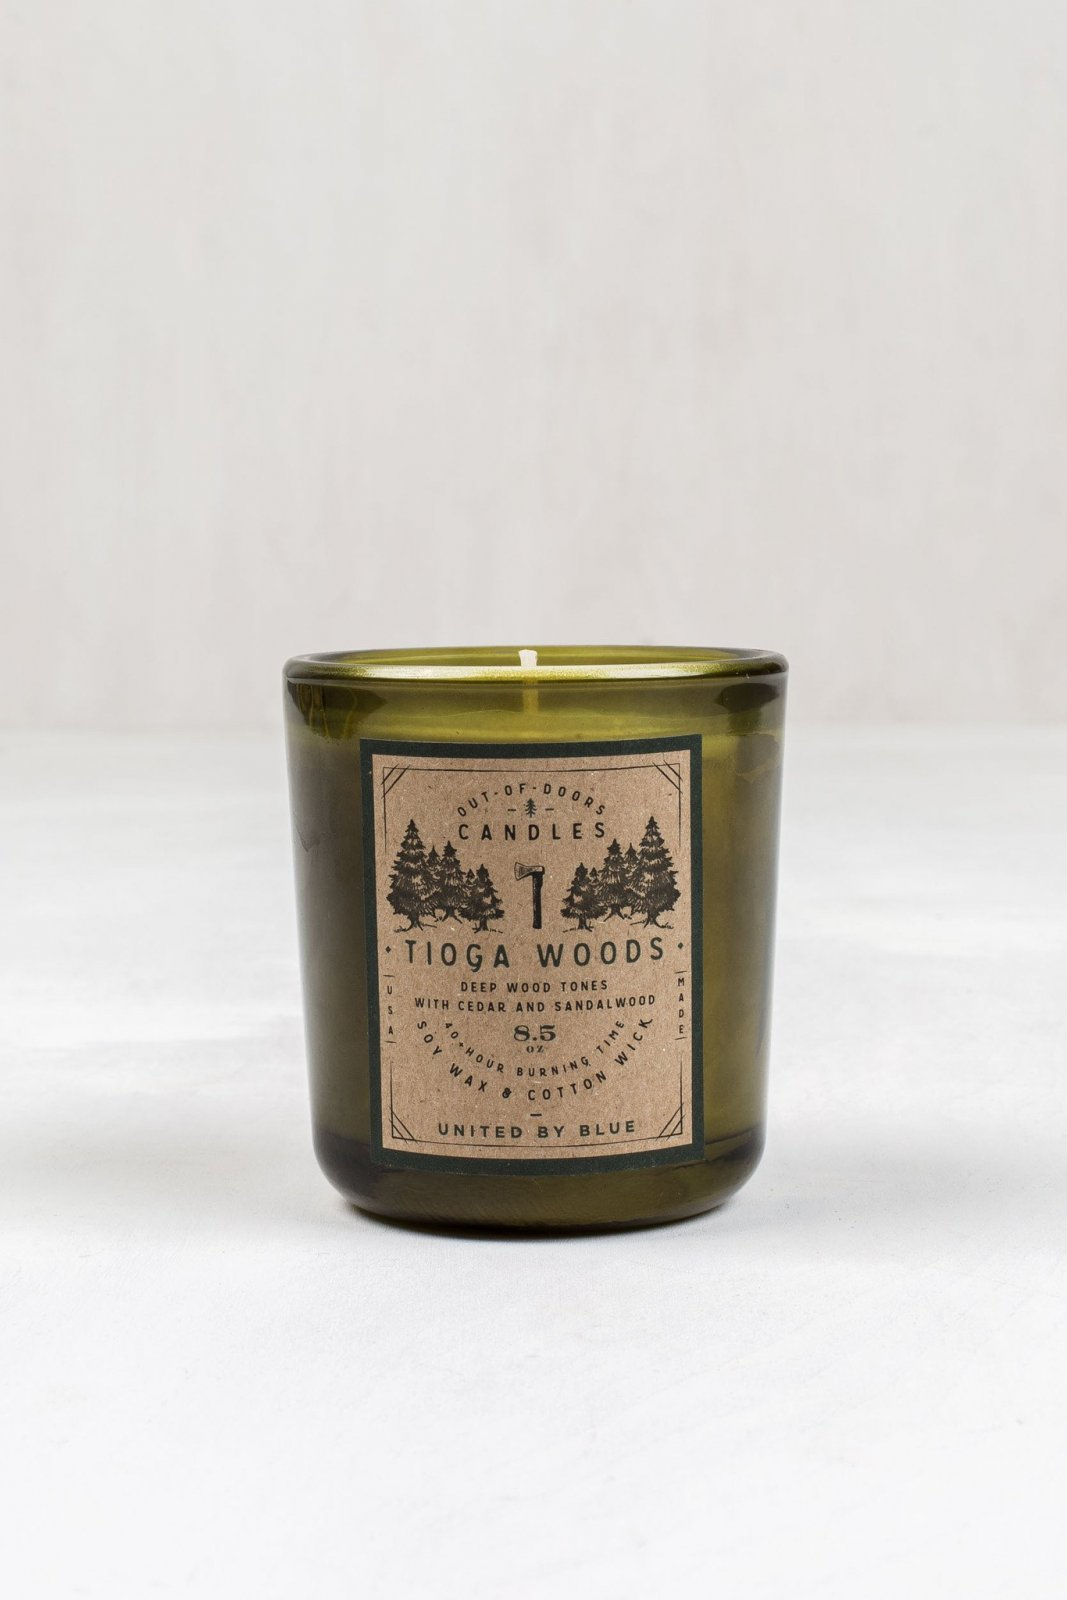 United By Blue Out-of-Doors Candle